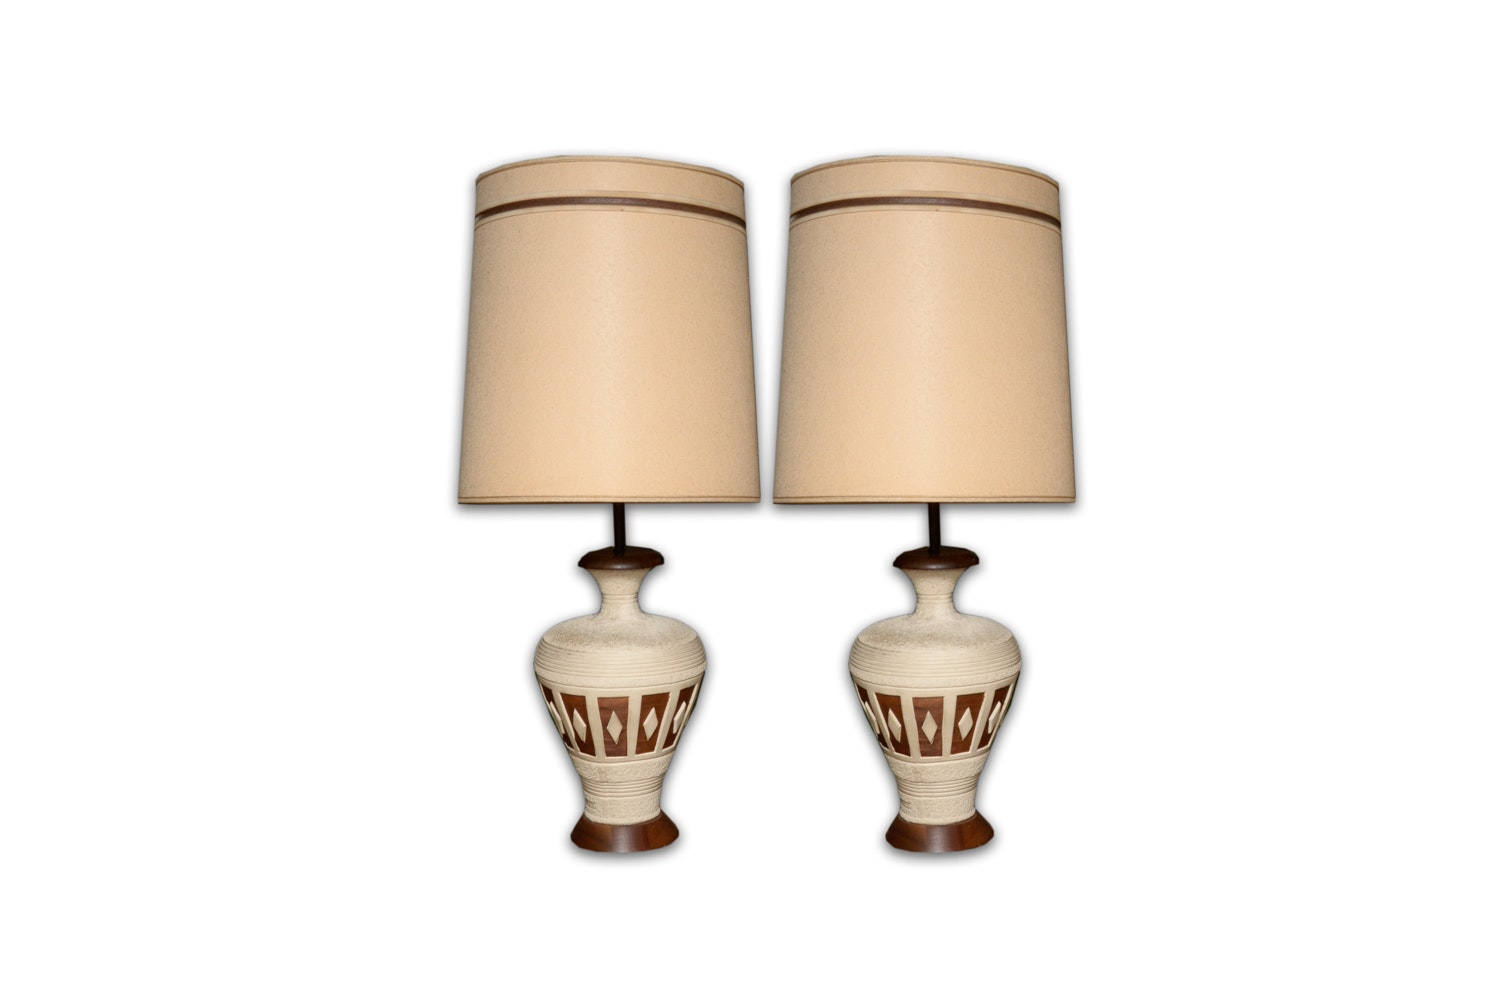 Vintage Ceramic Table Lamps ...